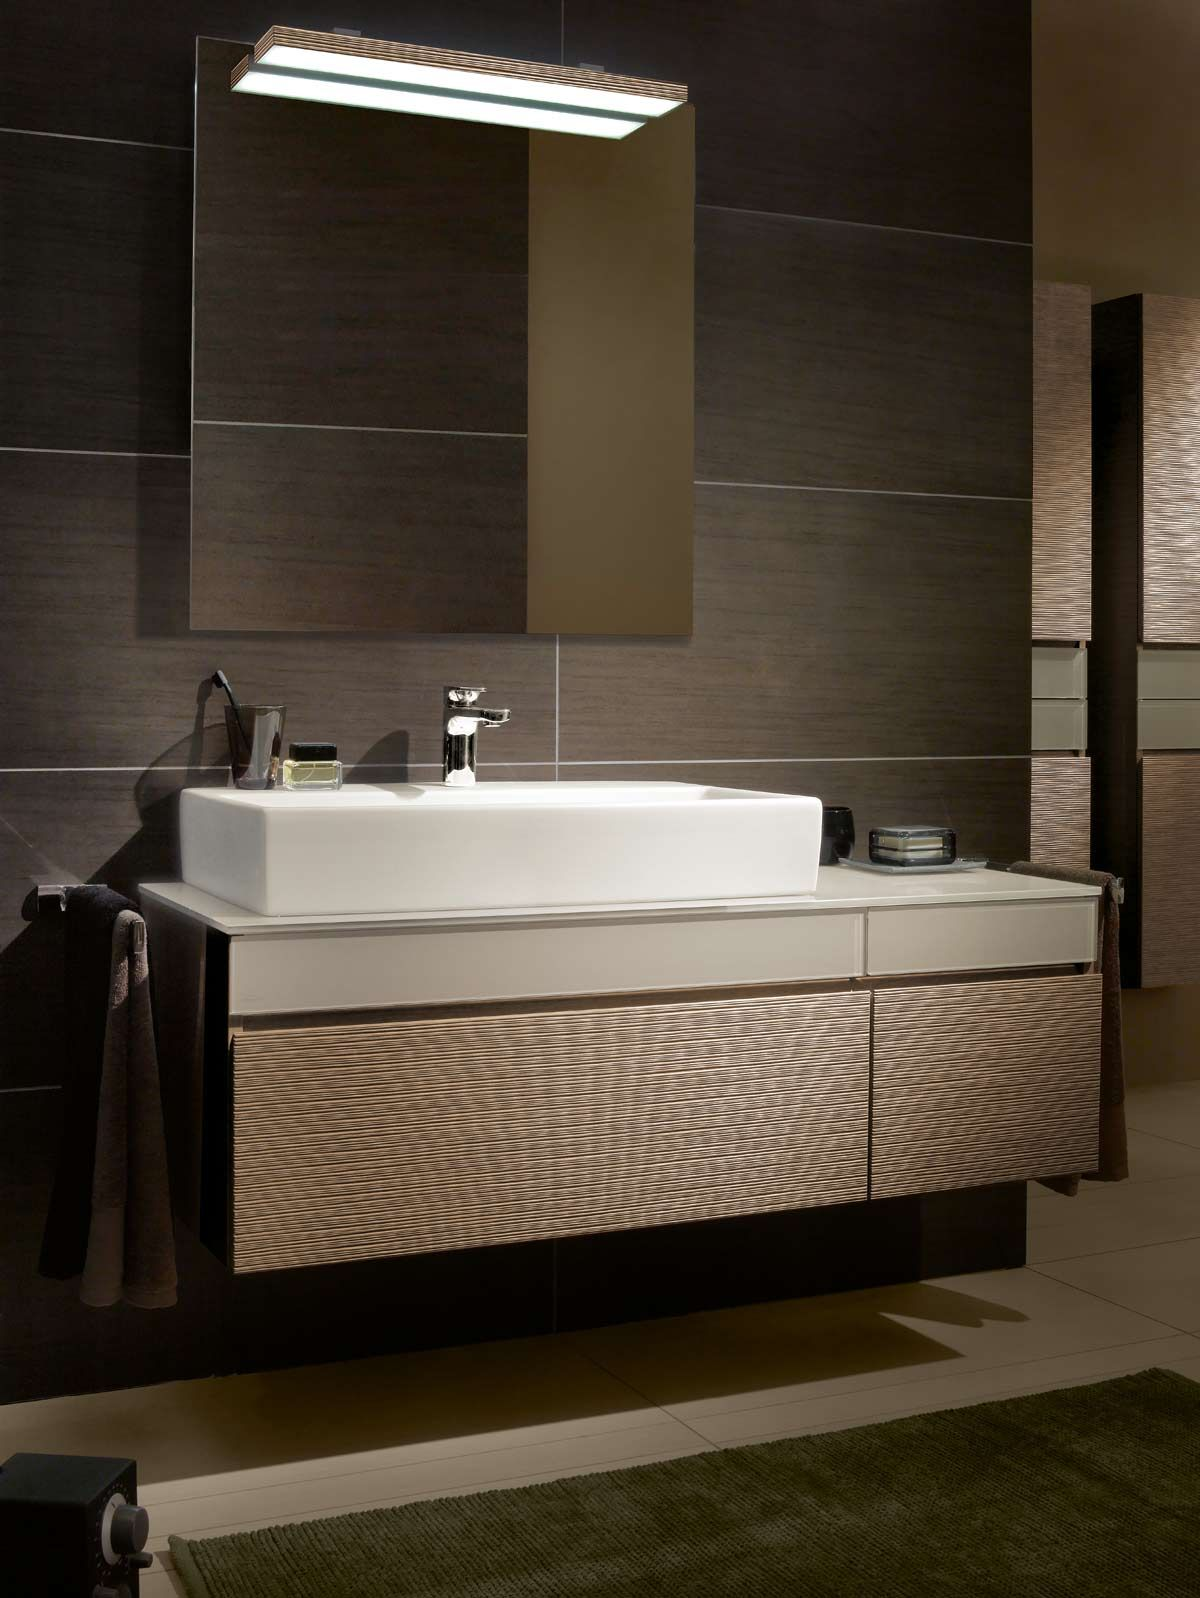 european bathrooms luxury bathroom designers in windsor and european bathrooms luxury bathroom designers in windsor and amersham we stock villeroy boch